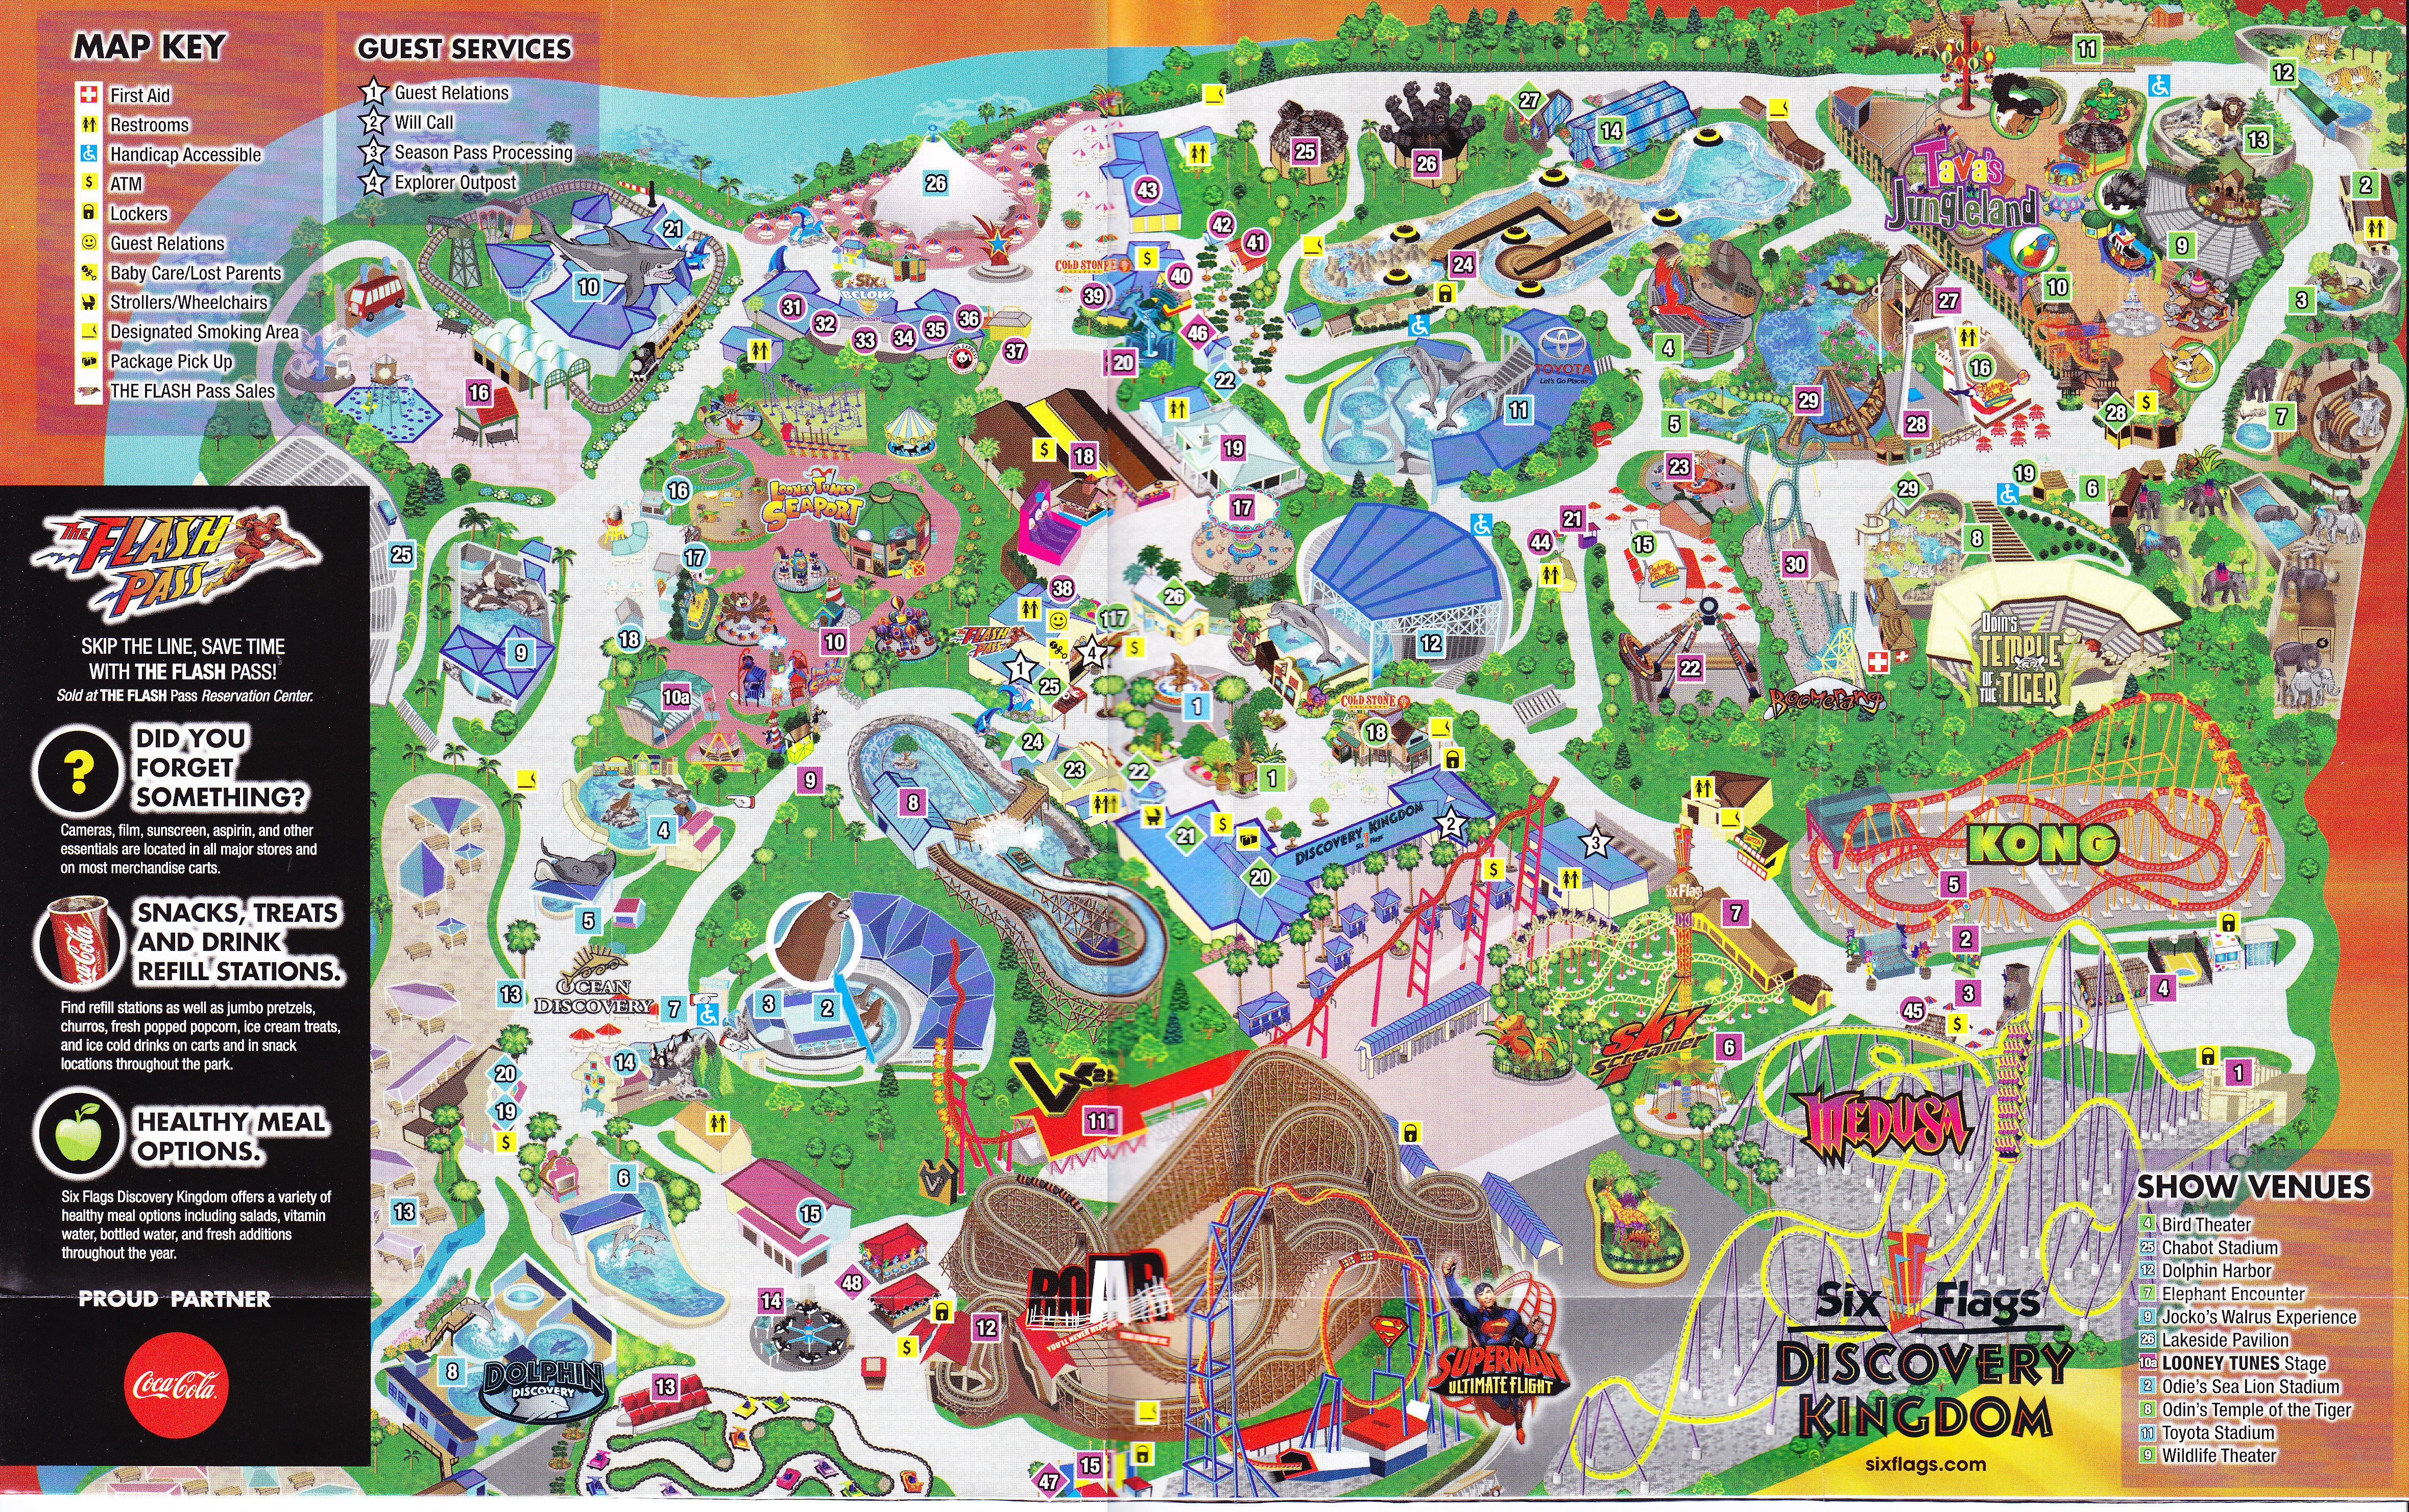 Six Flags Discovery Kingdom - 2013 Park Map